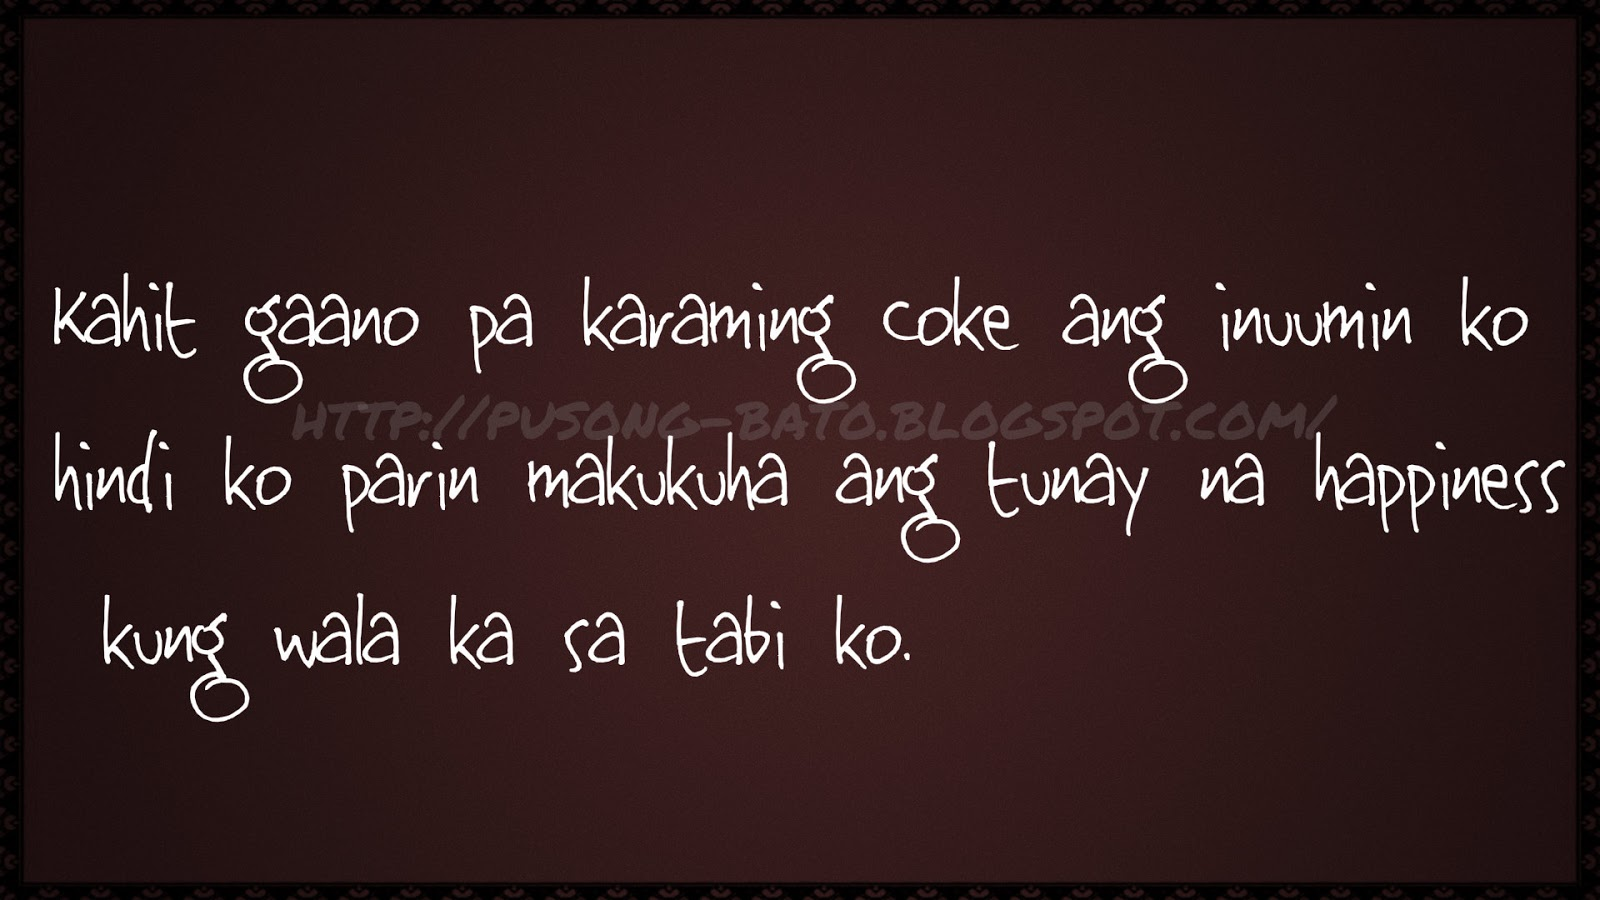 Love Quotes 150 Quotes About Love: Tagalog Sad Love Quotes. QuotesGram